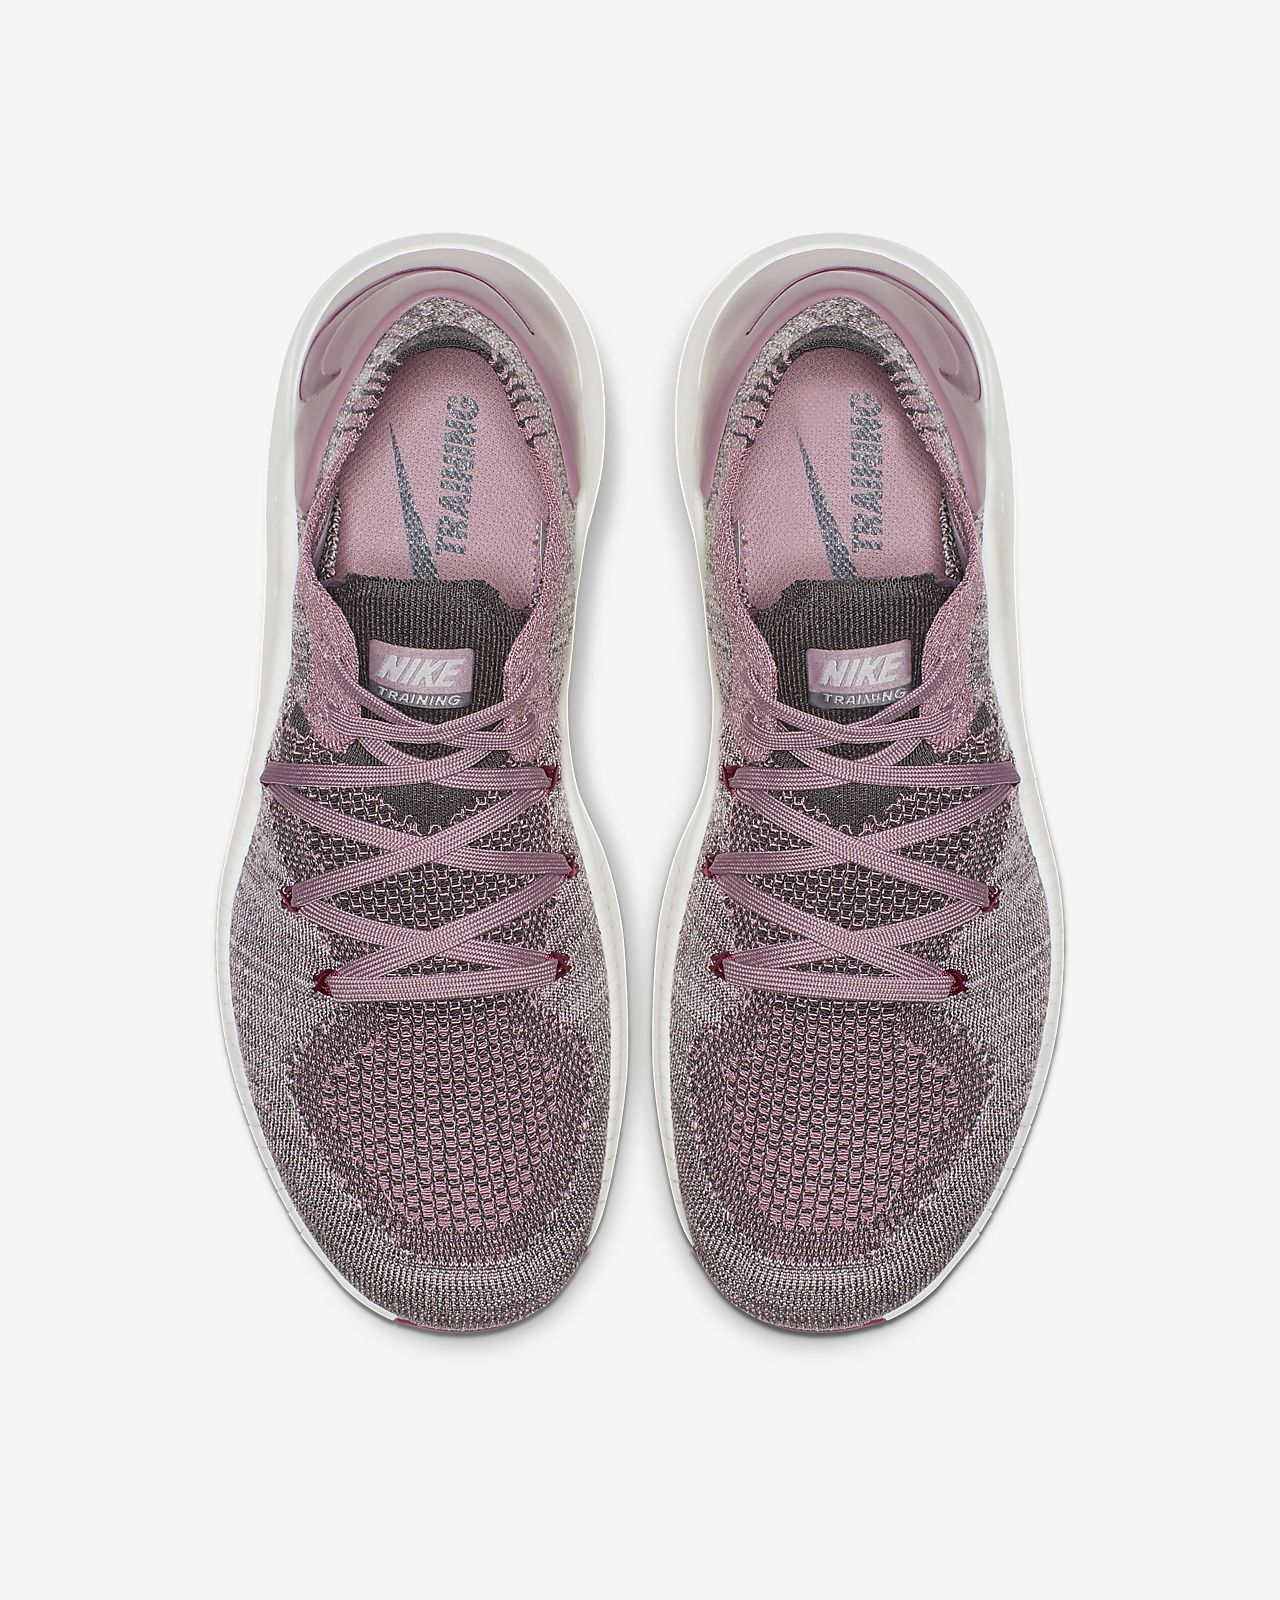 save off 6bc2f dca9d ... Nike Free TR Flyknit 3 Women s Gym HIIT Cross Training Shoe